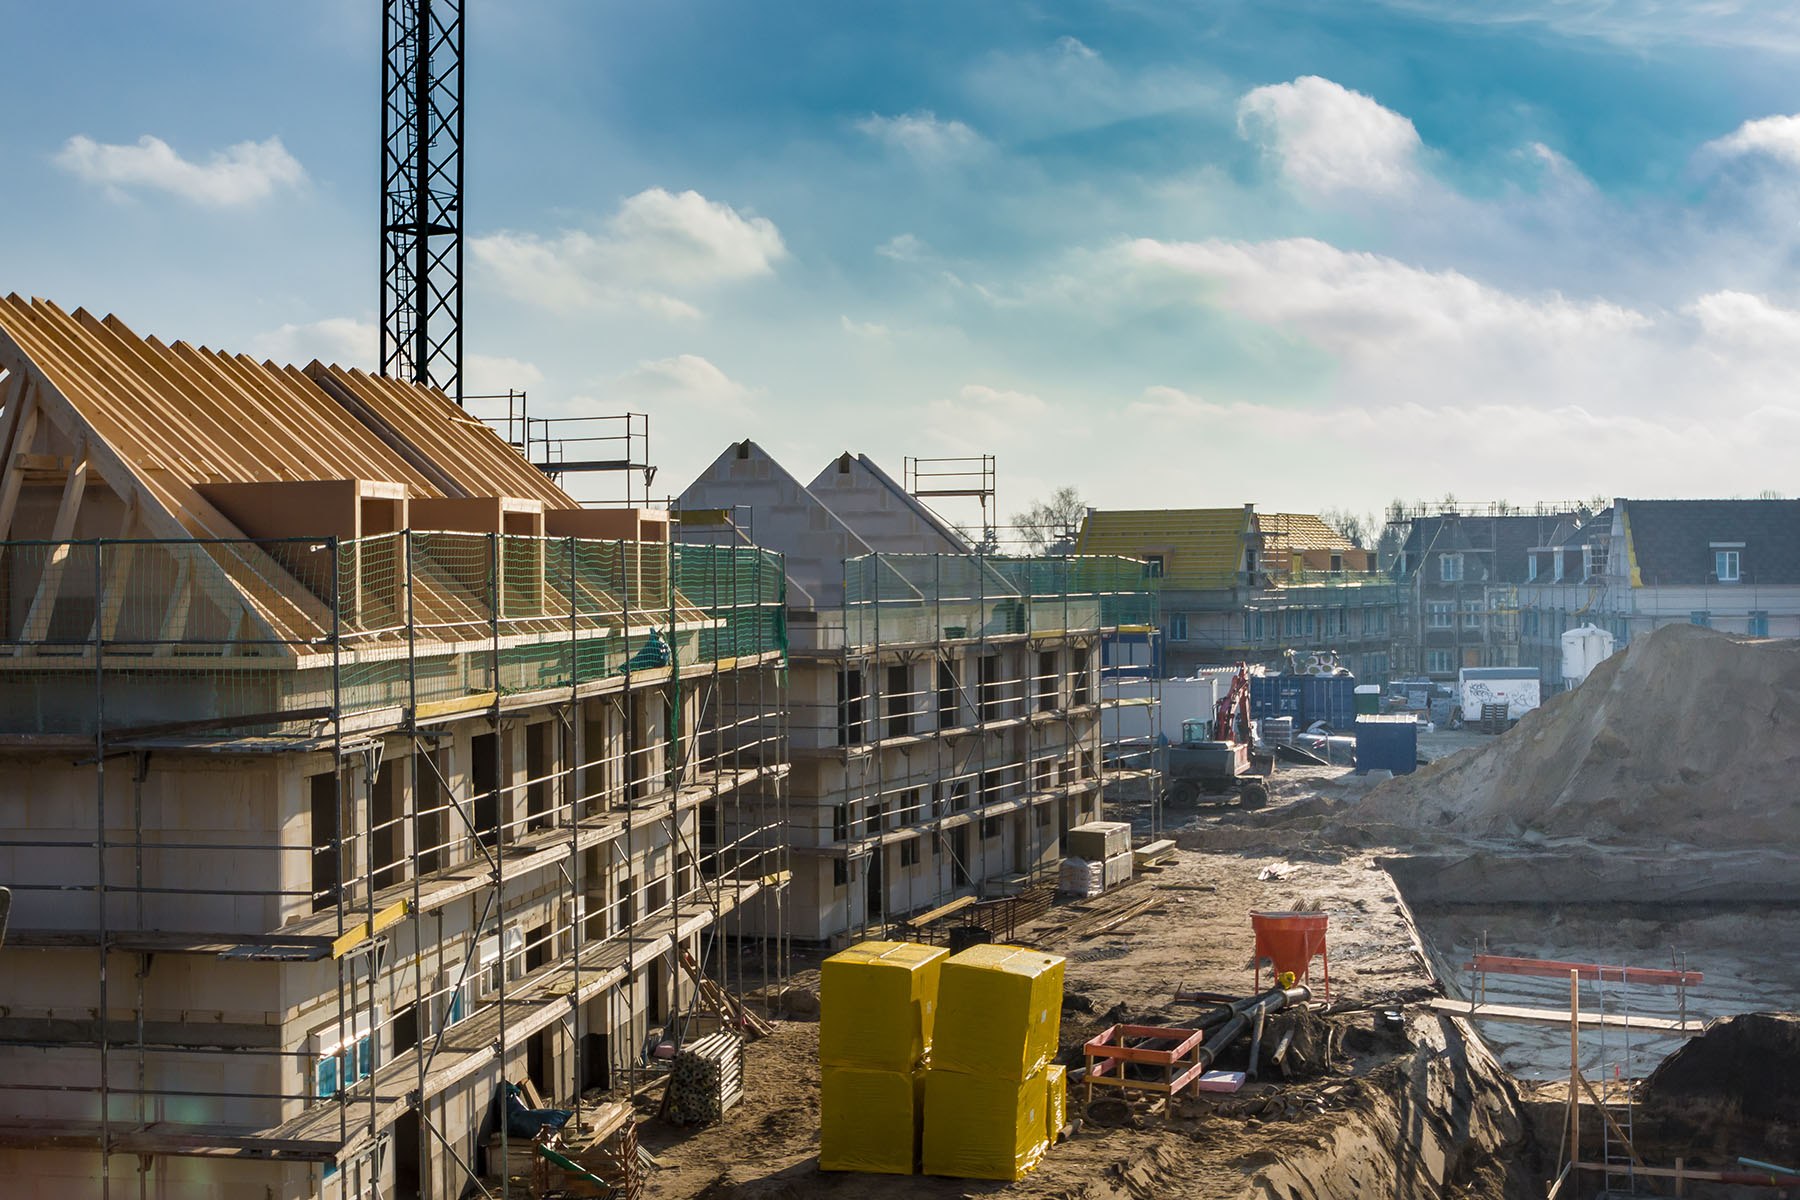 Planning System Reforms to Fast Track Local Plans. Councils would be able to designate the land that they would like developed and receive automatic planning permission for renewal.